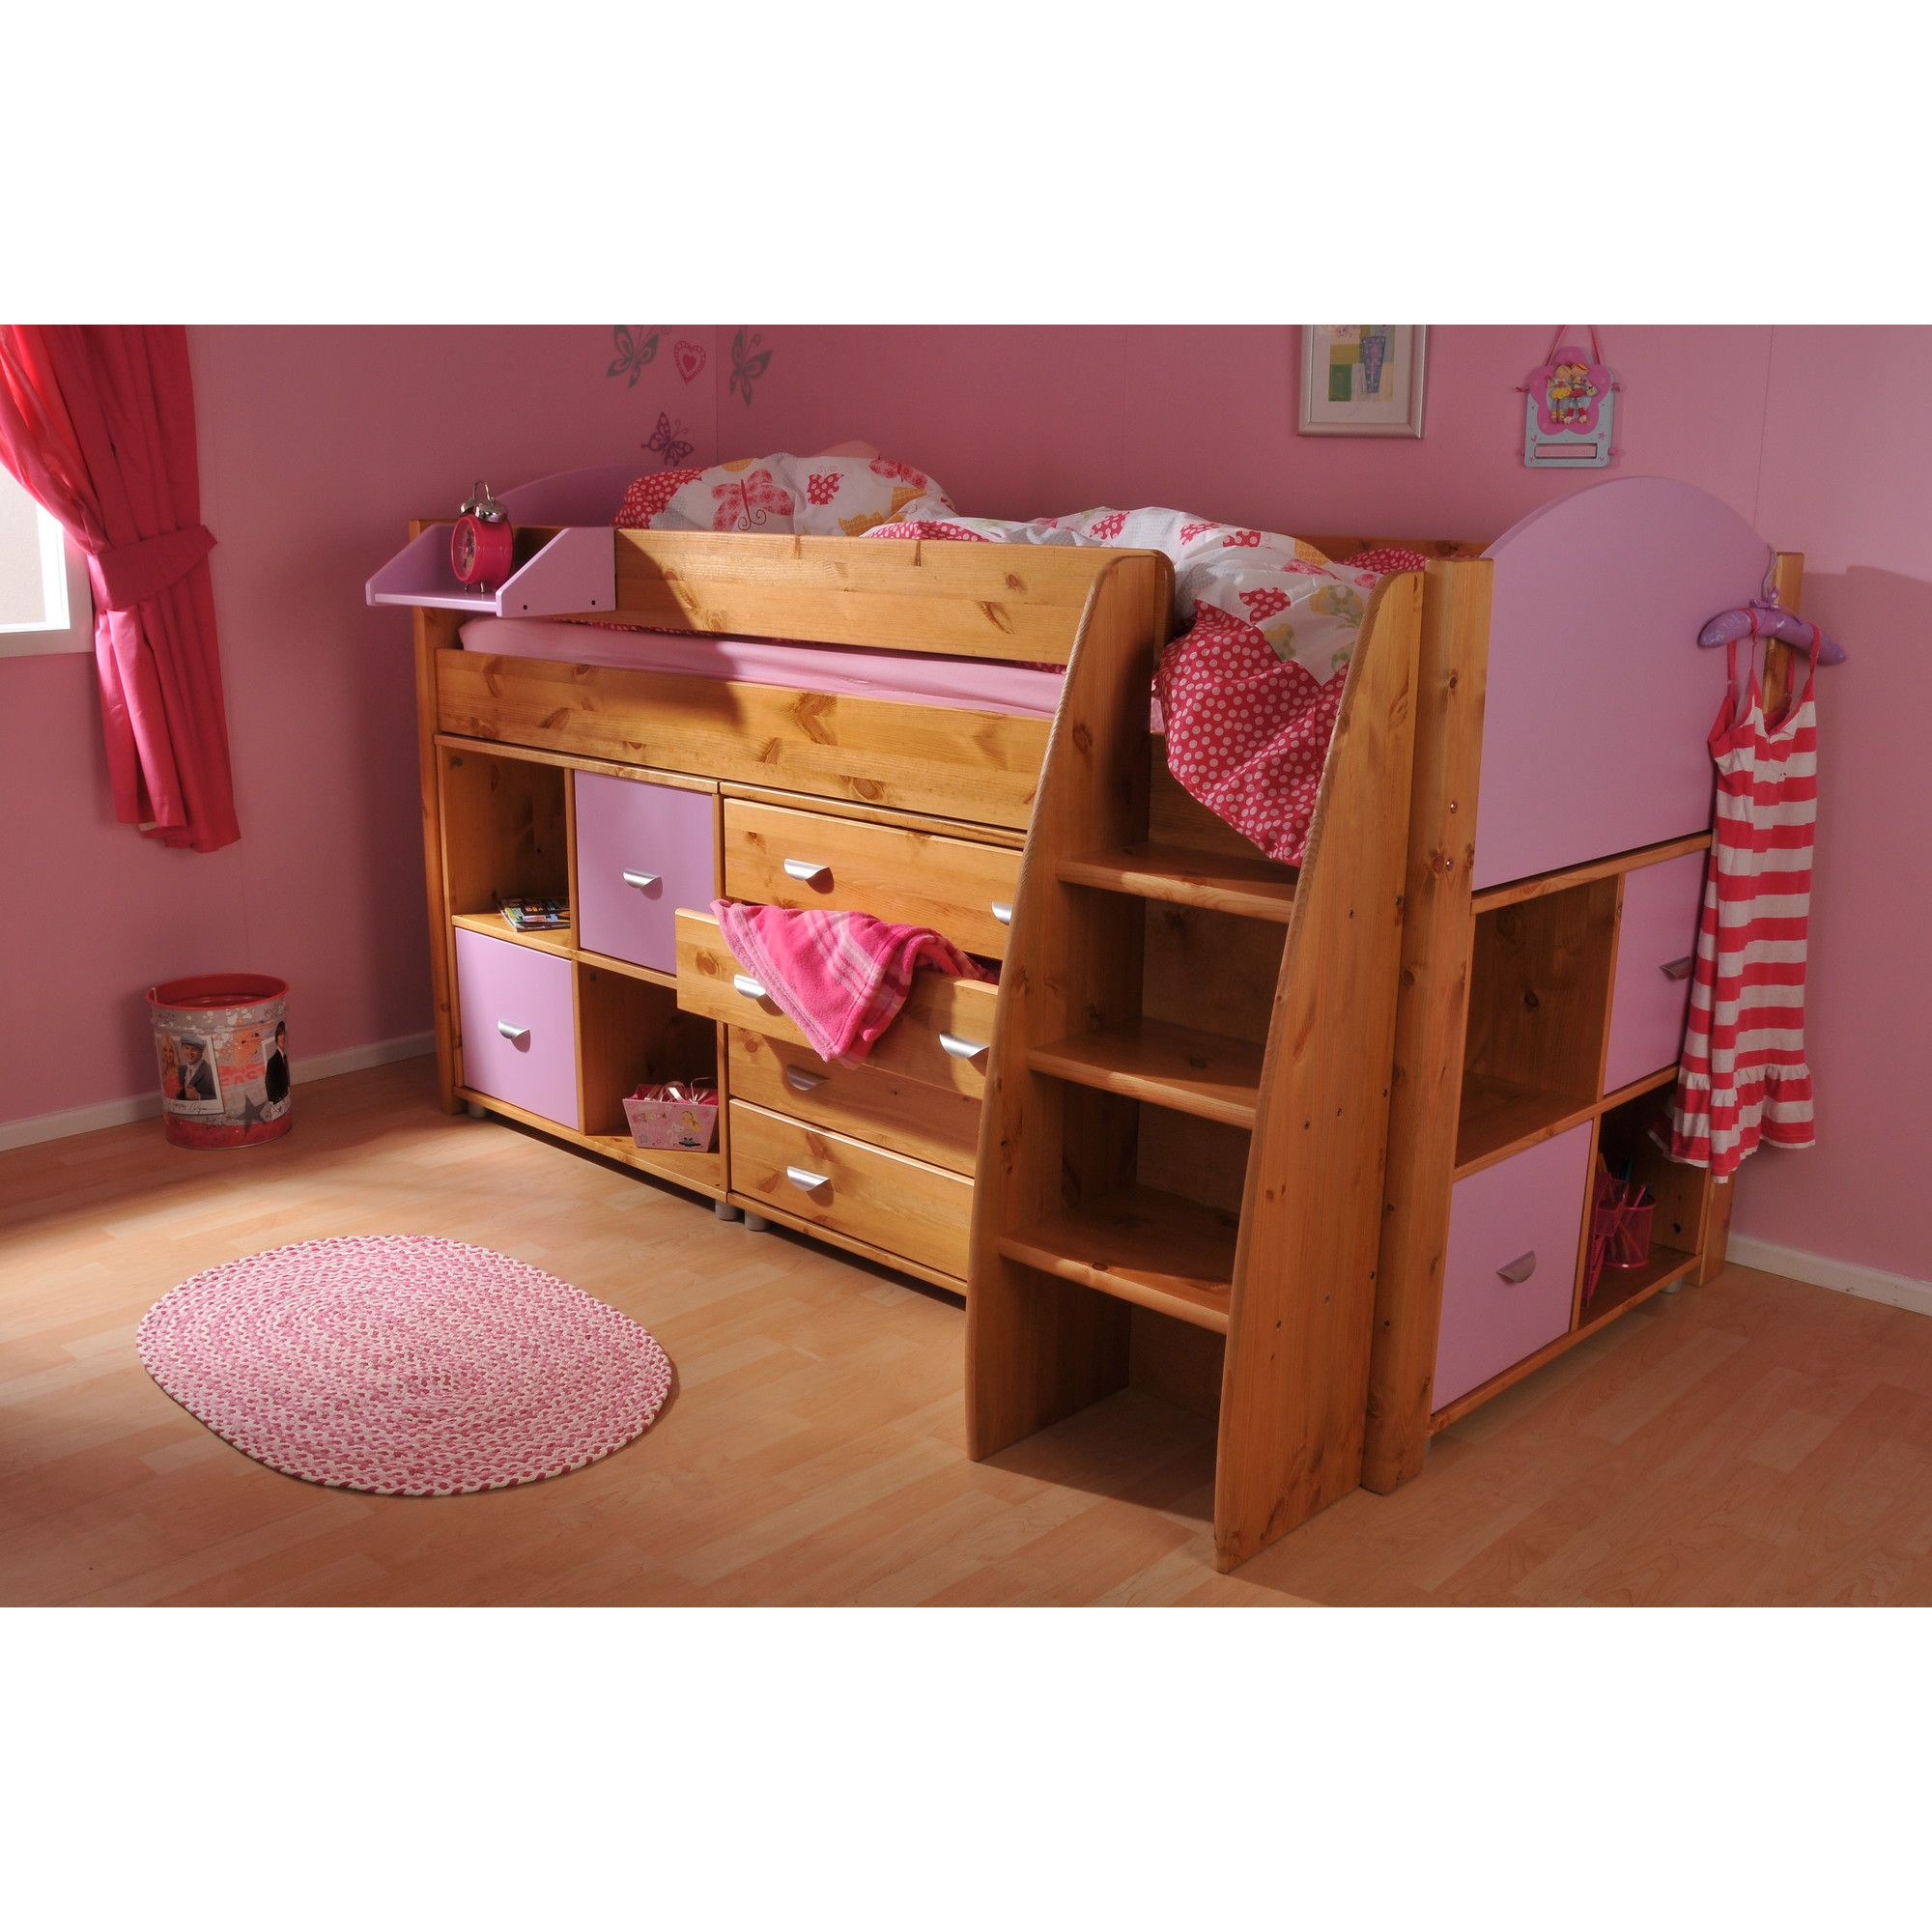 Stompa Rondo Mid Sleeper with 4 Drawer Chest and Cube Units - Antique - White at Tesco Direct